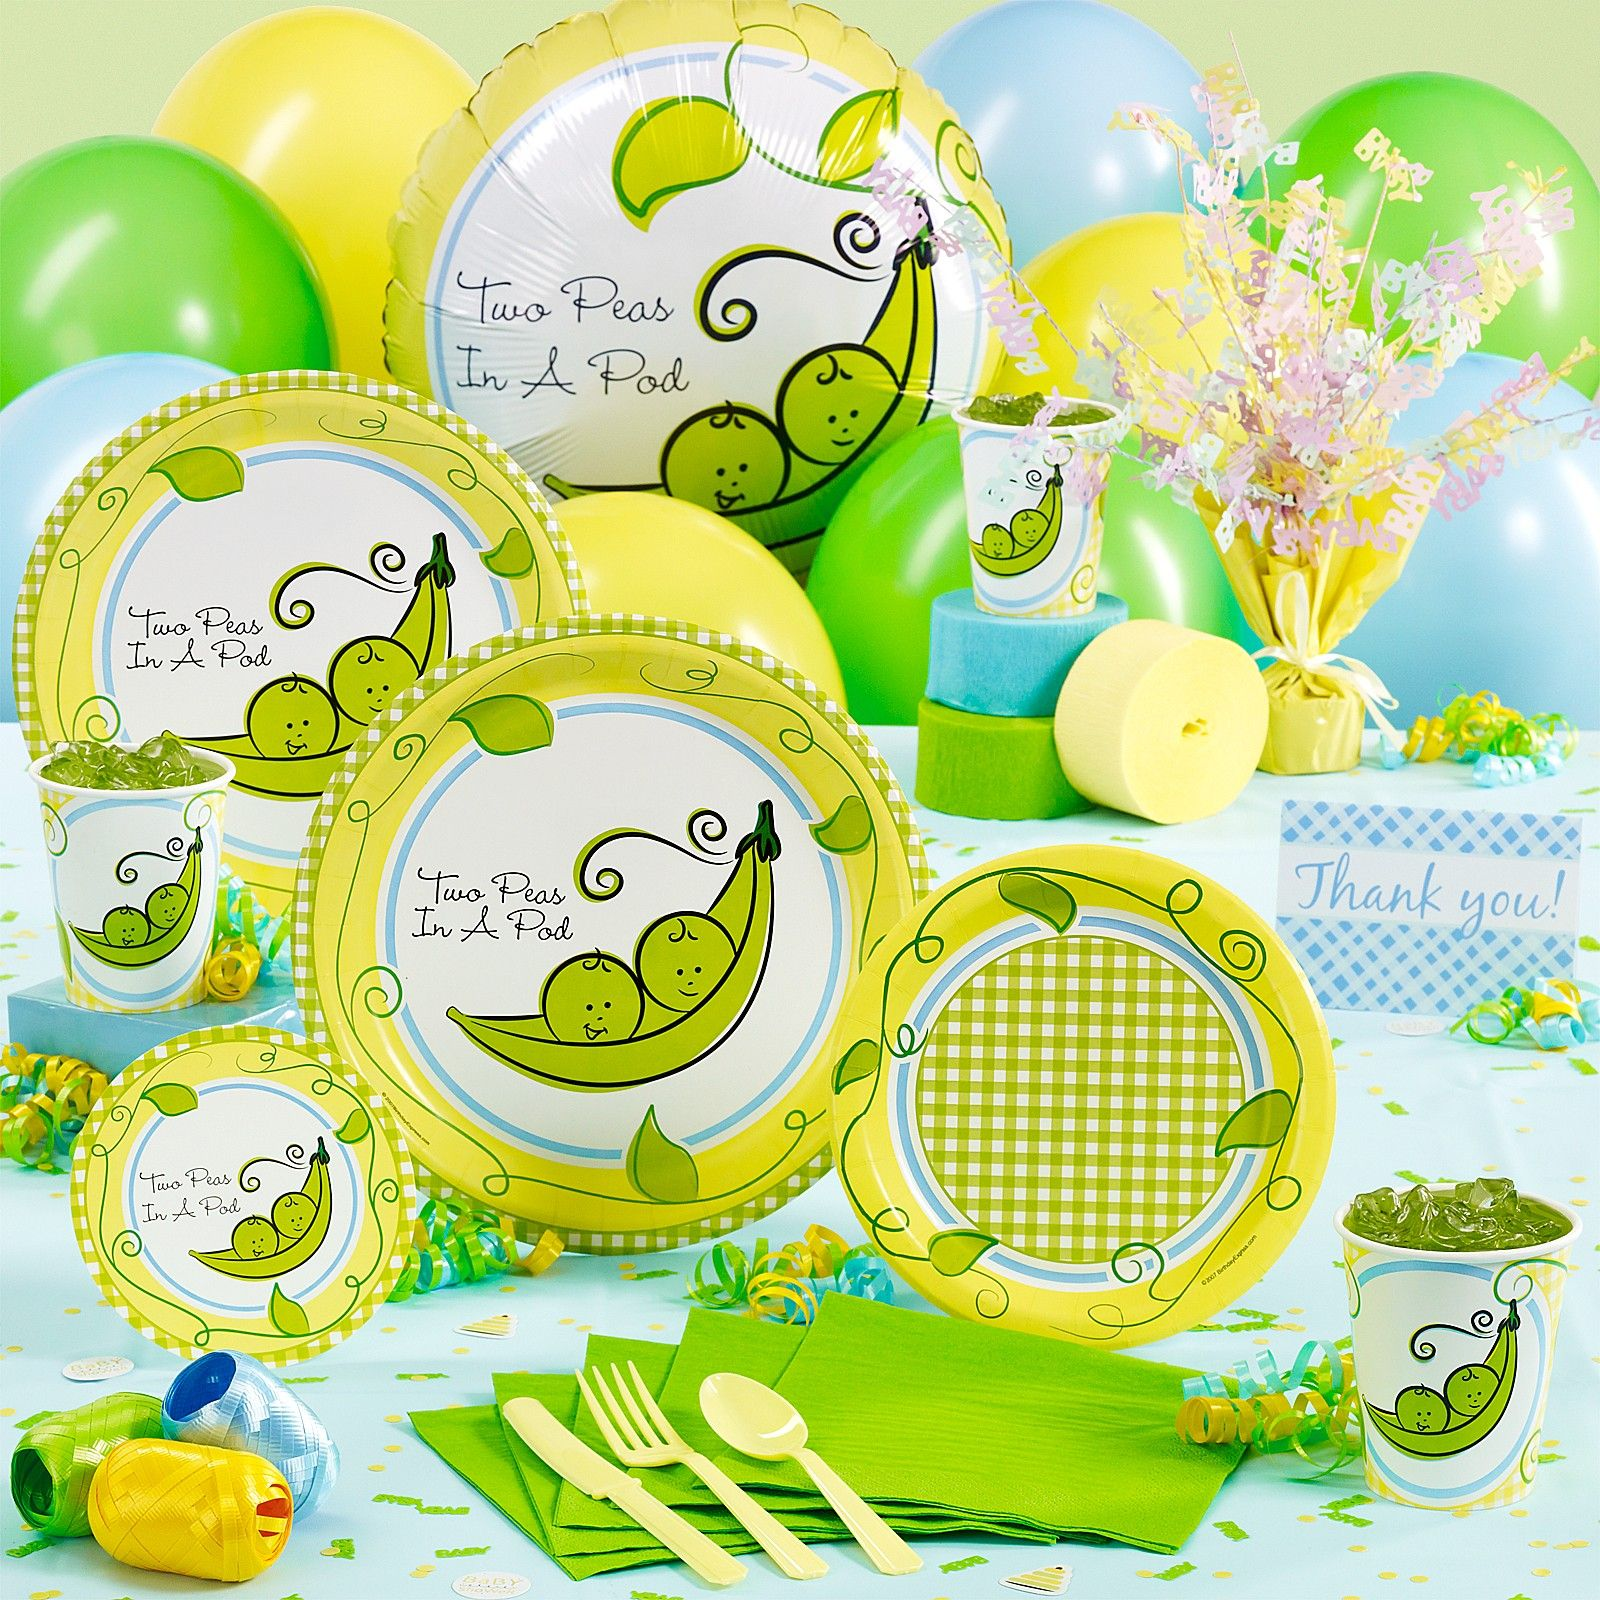 shower supplies ideas plus decorations two party showers with full for well favors pod a size decor of baby peas food also in themes as conjunction